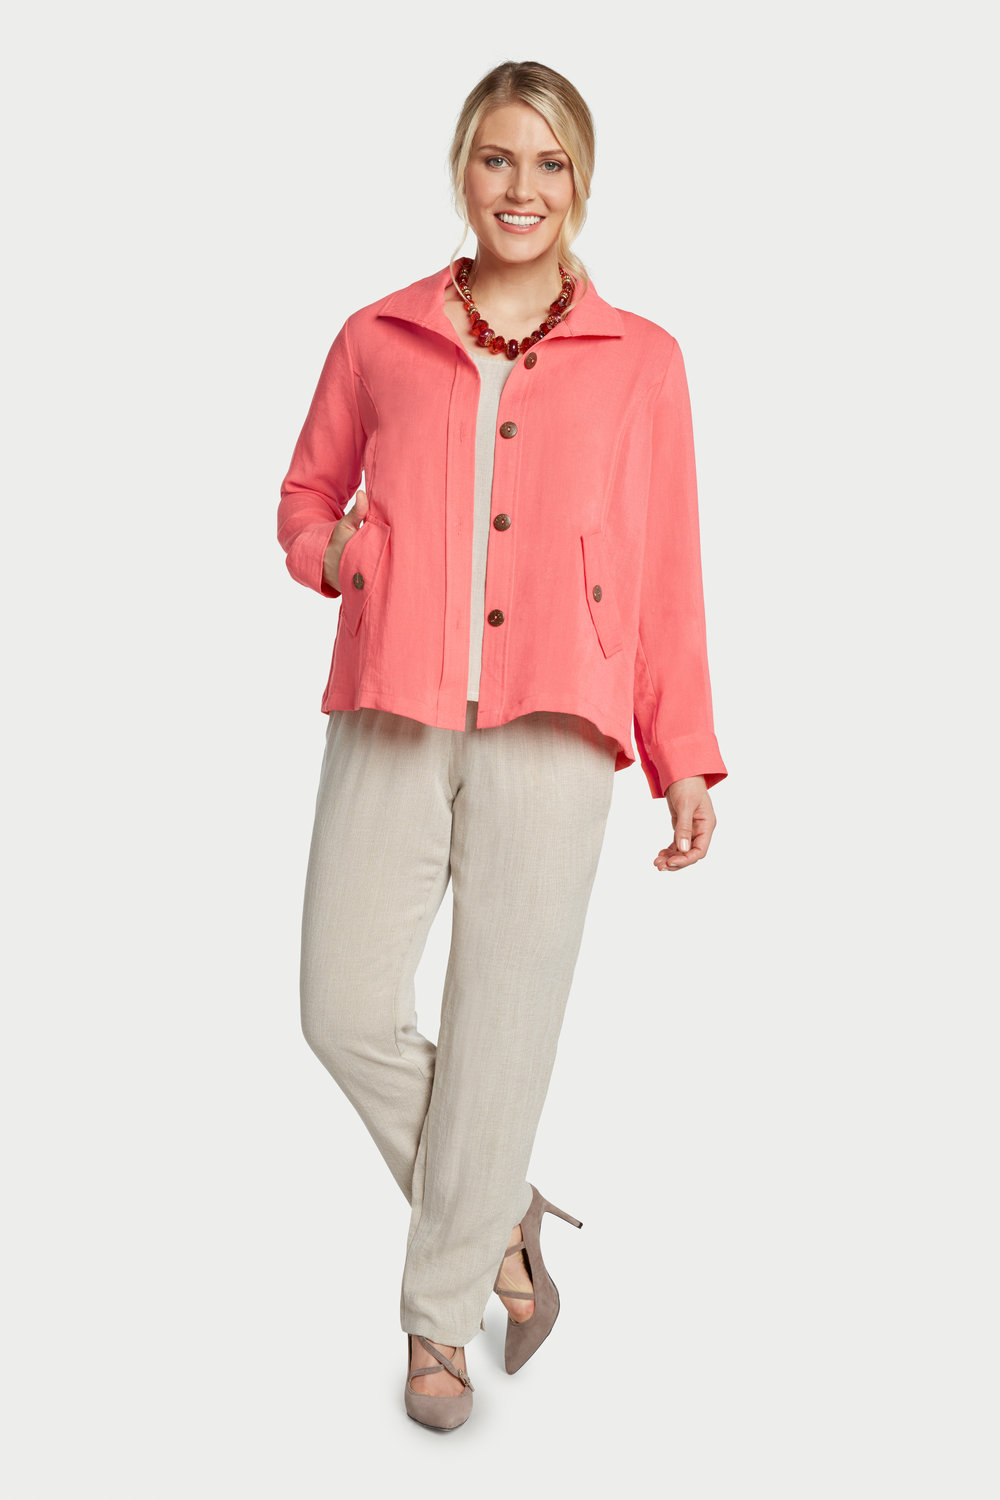 AA242 - Florence False-Flap Pocket Jacket    Papaya - CL4385